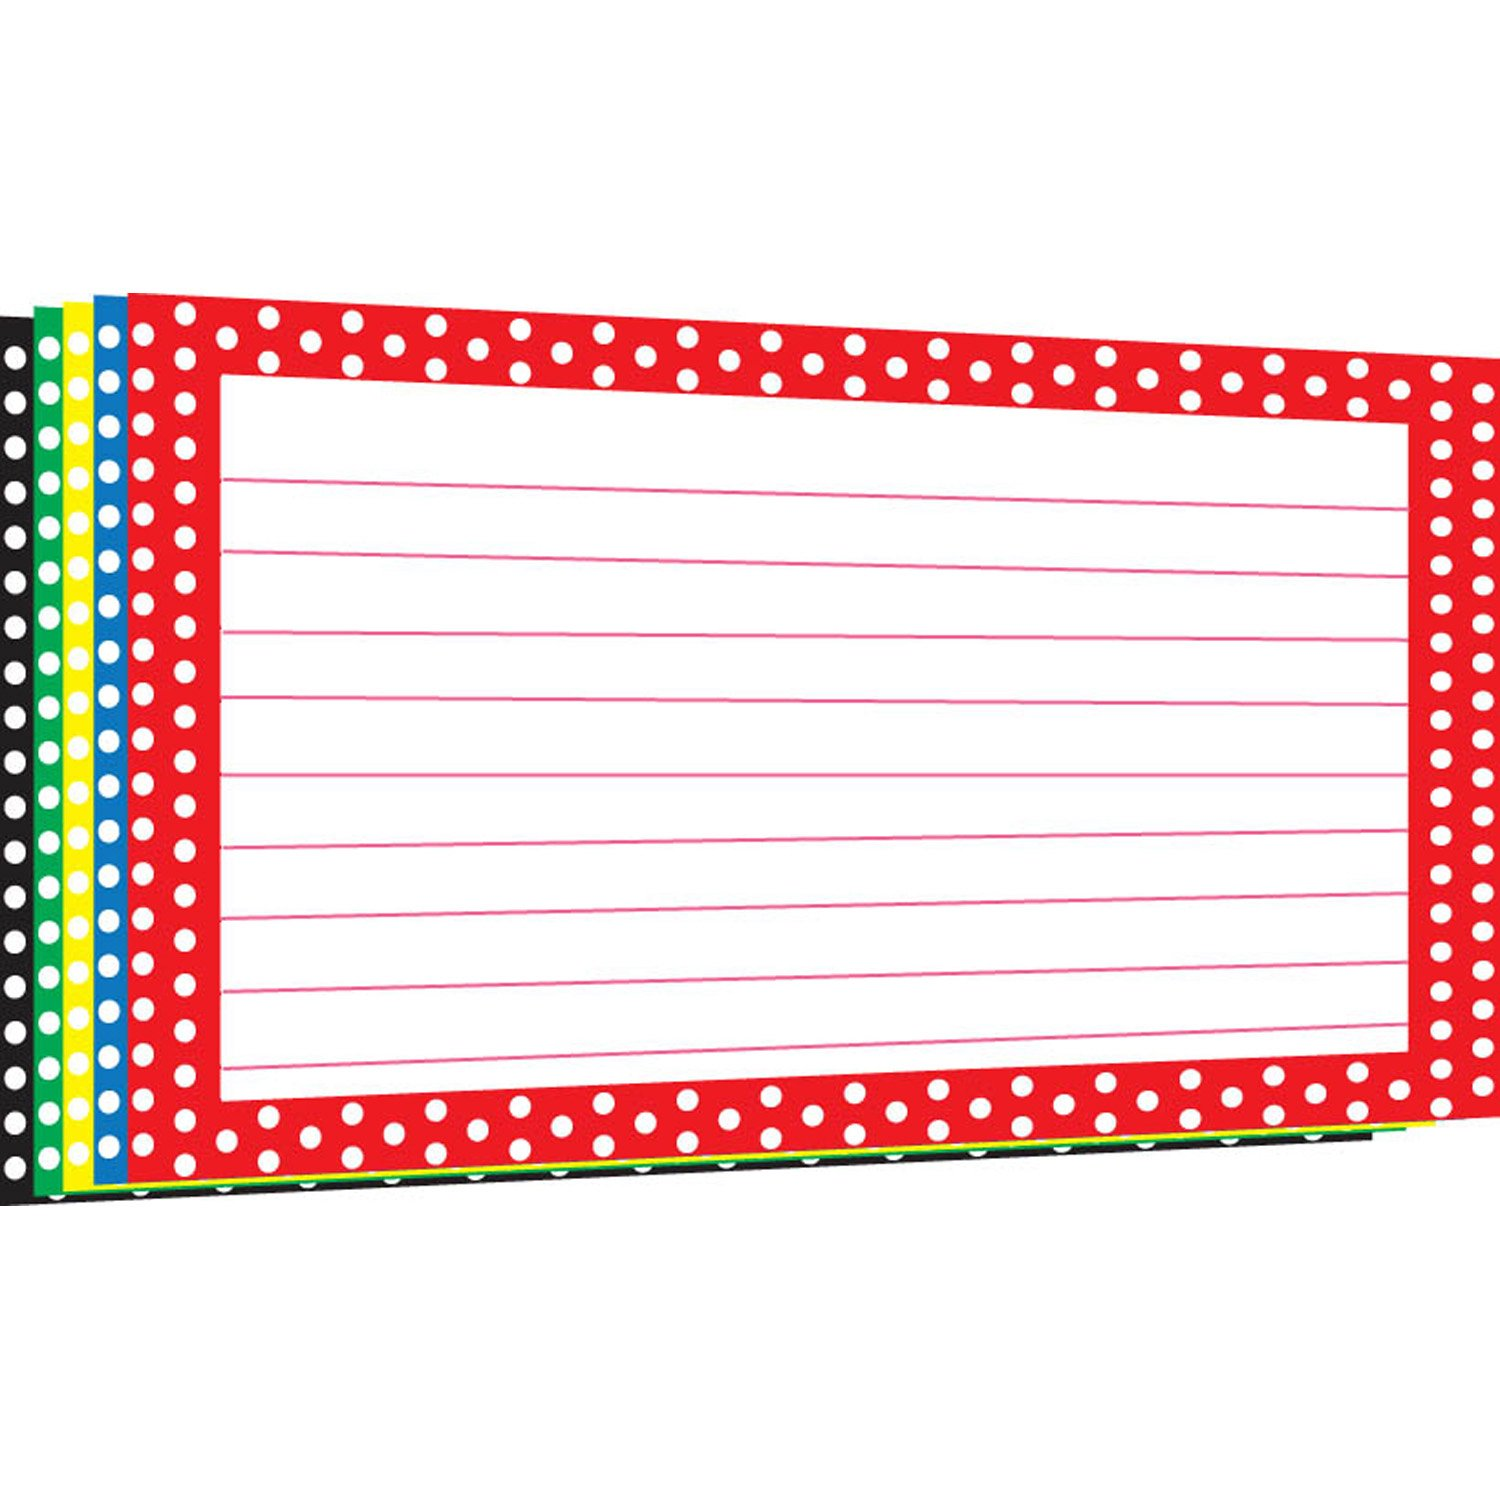 Amazon.com : TOP3669 - BORDER INDEX CARDS 4X6 POLKA DOT : Office ...